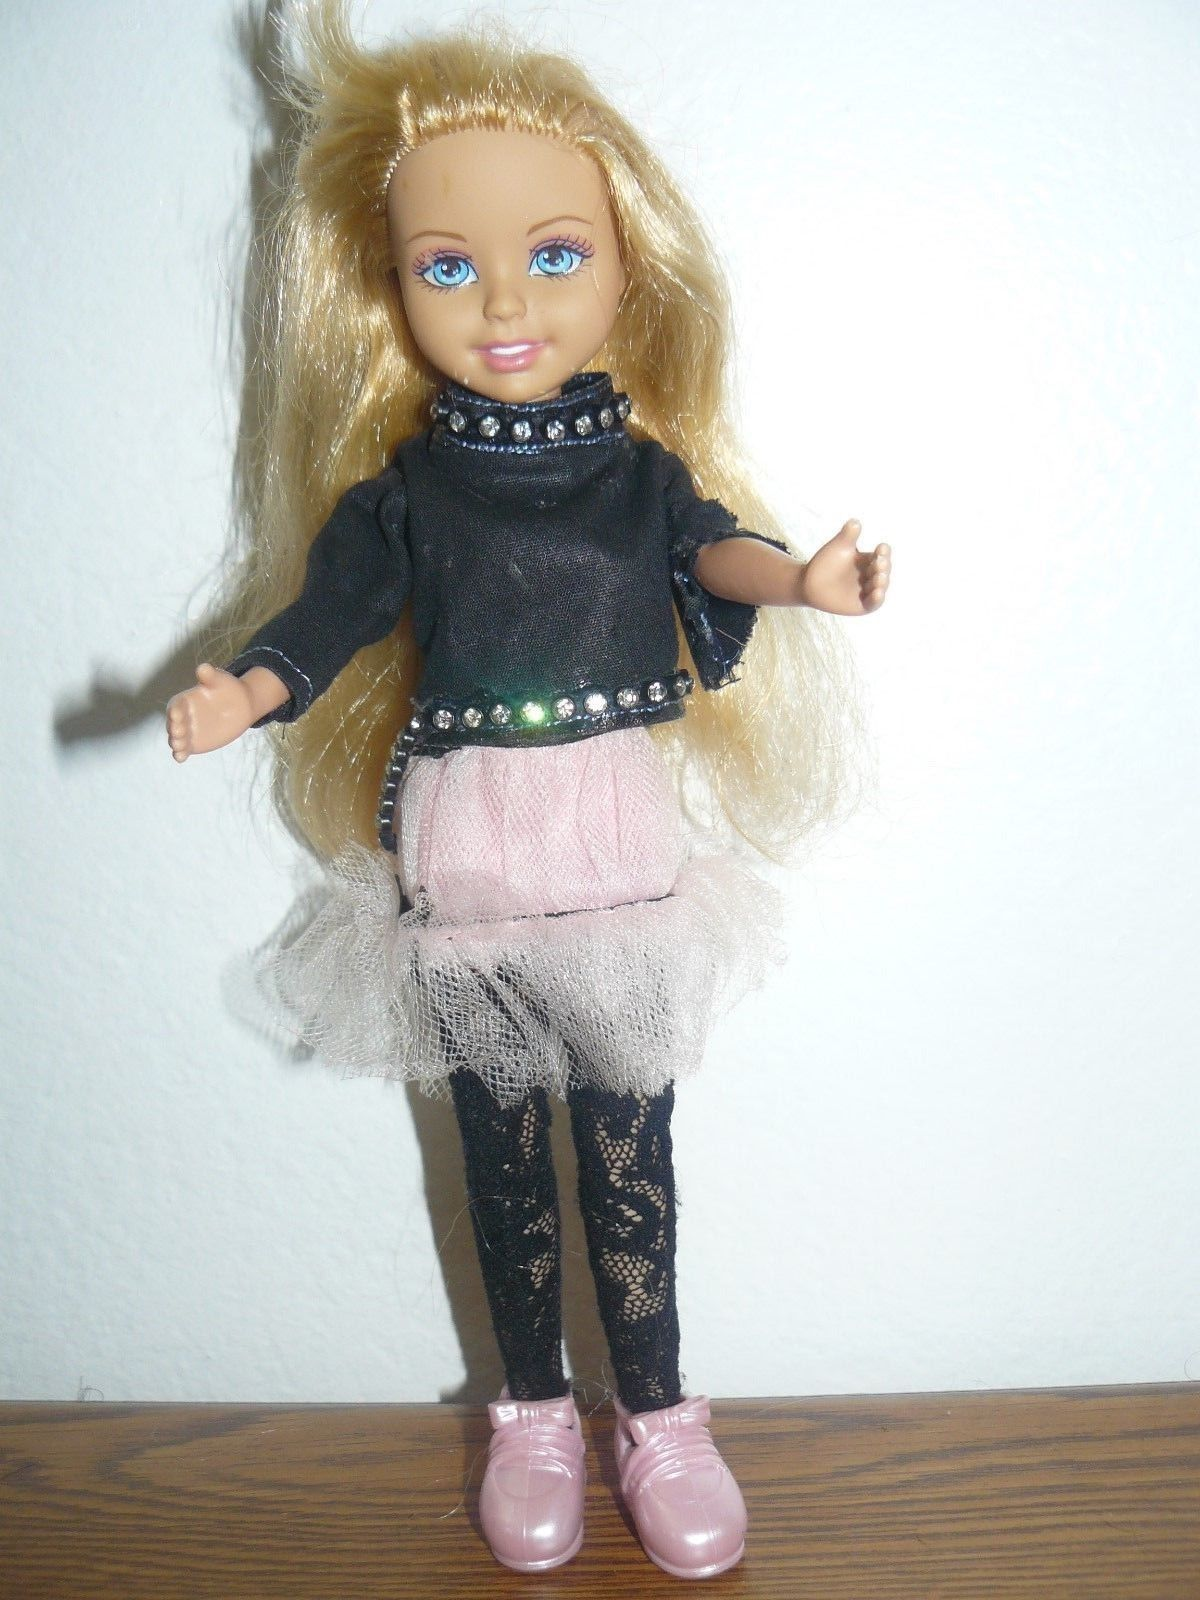 0bd3eef78847c 2004 Mattel Girl Doll in black long sleeve and 50 similar items